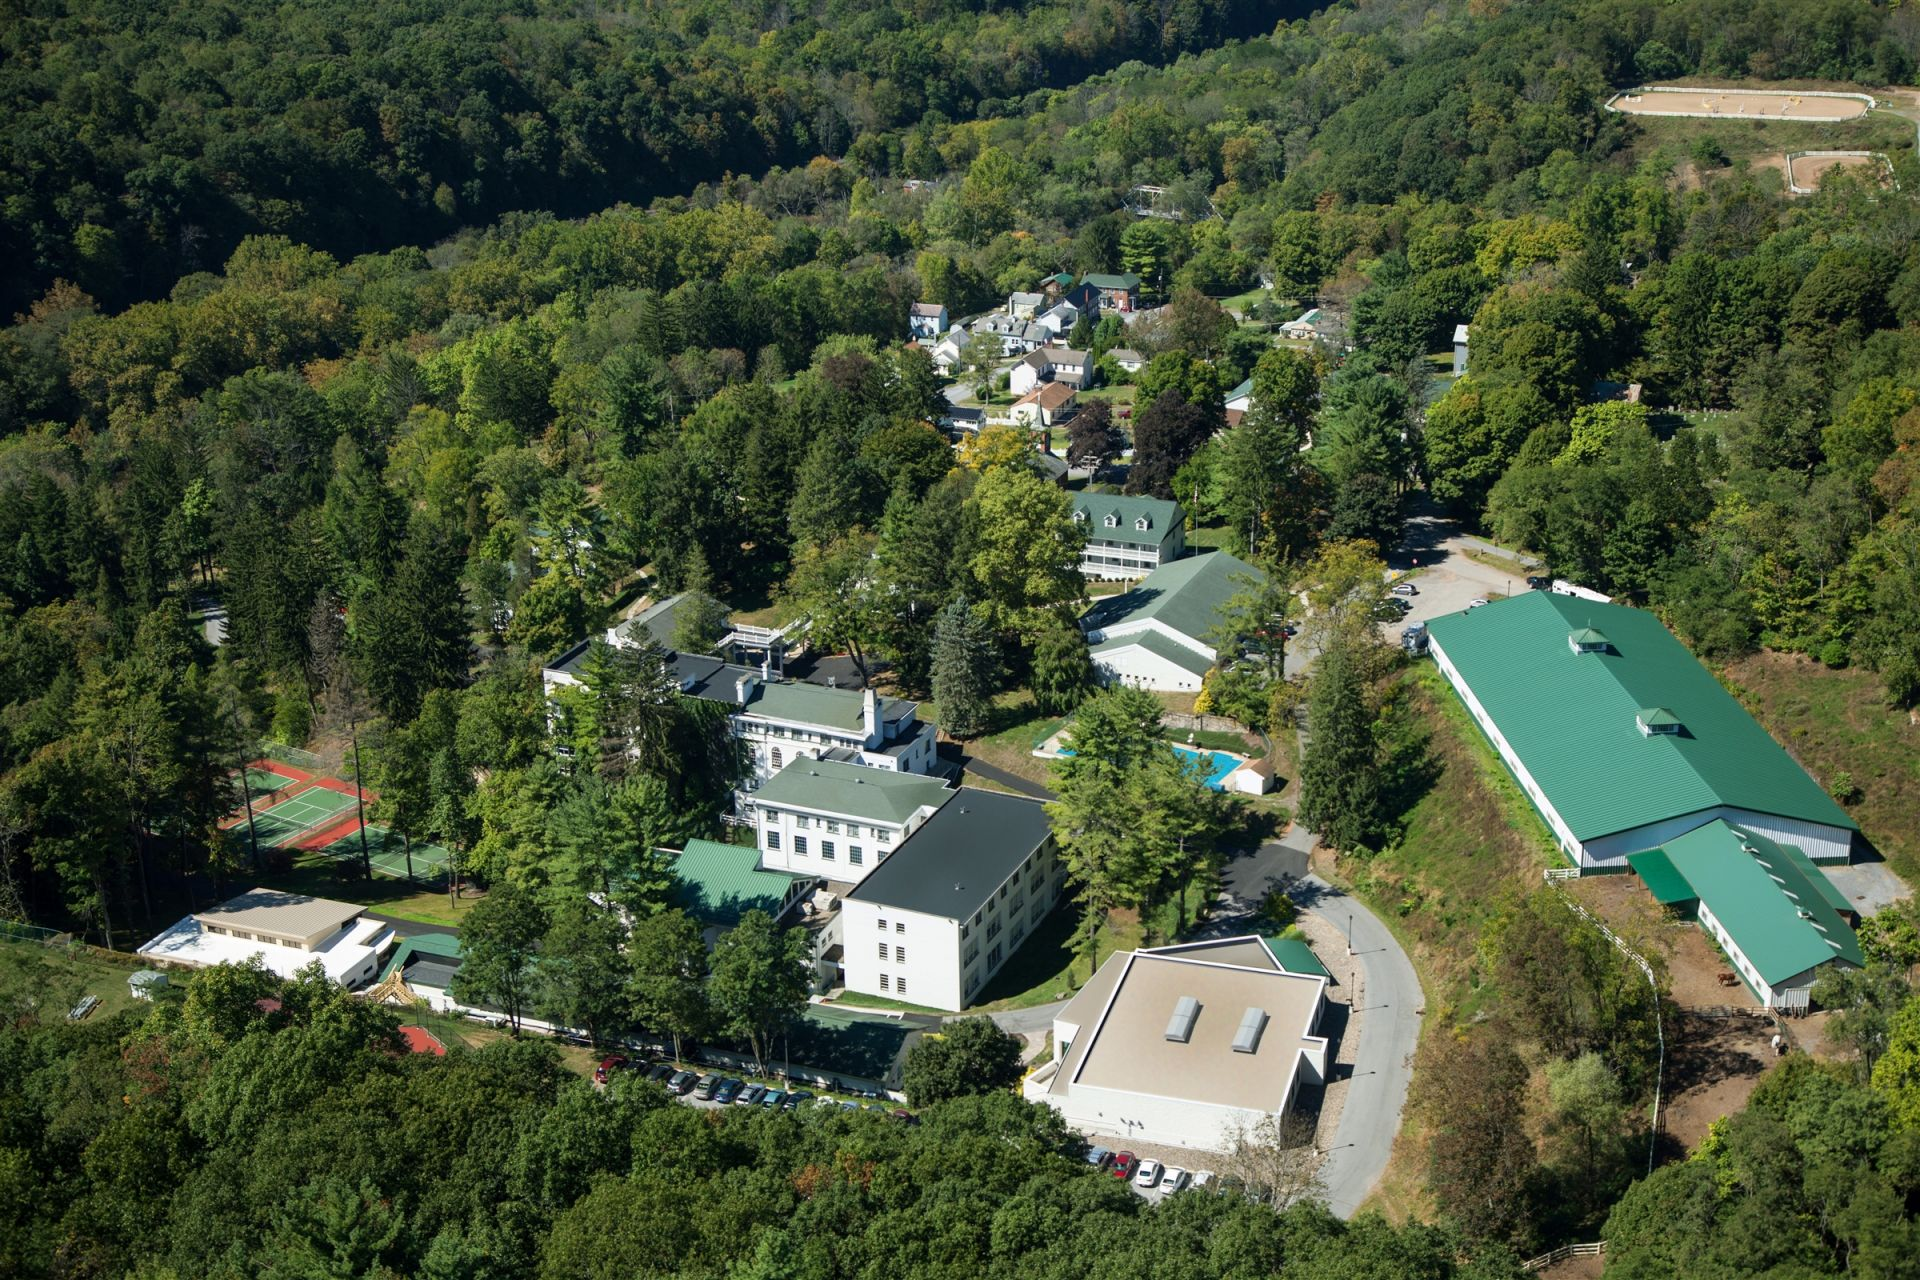 Grier Summer is located on the 325 acre hillside campus of the historic Grier School. The school's facilities, amenities, and accommodations are available for camp to use throughout the summer.